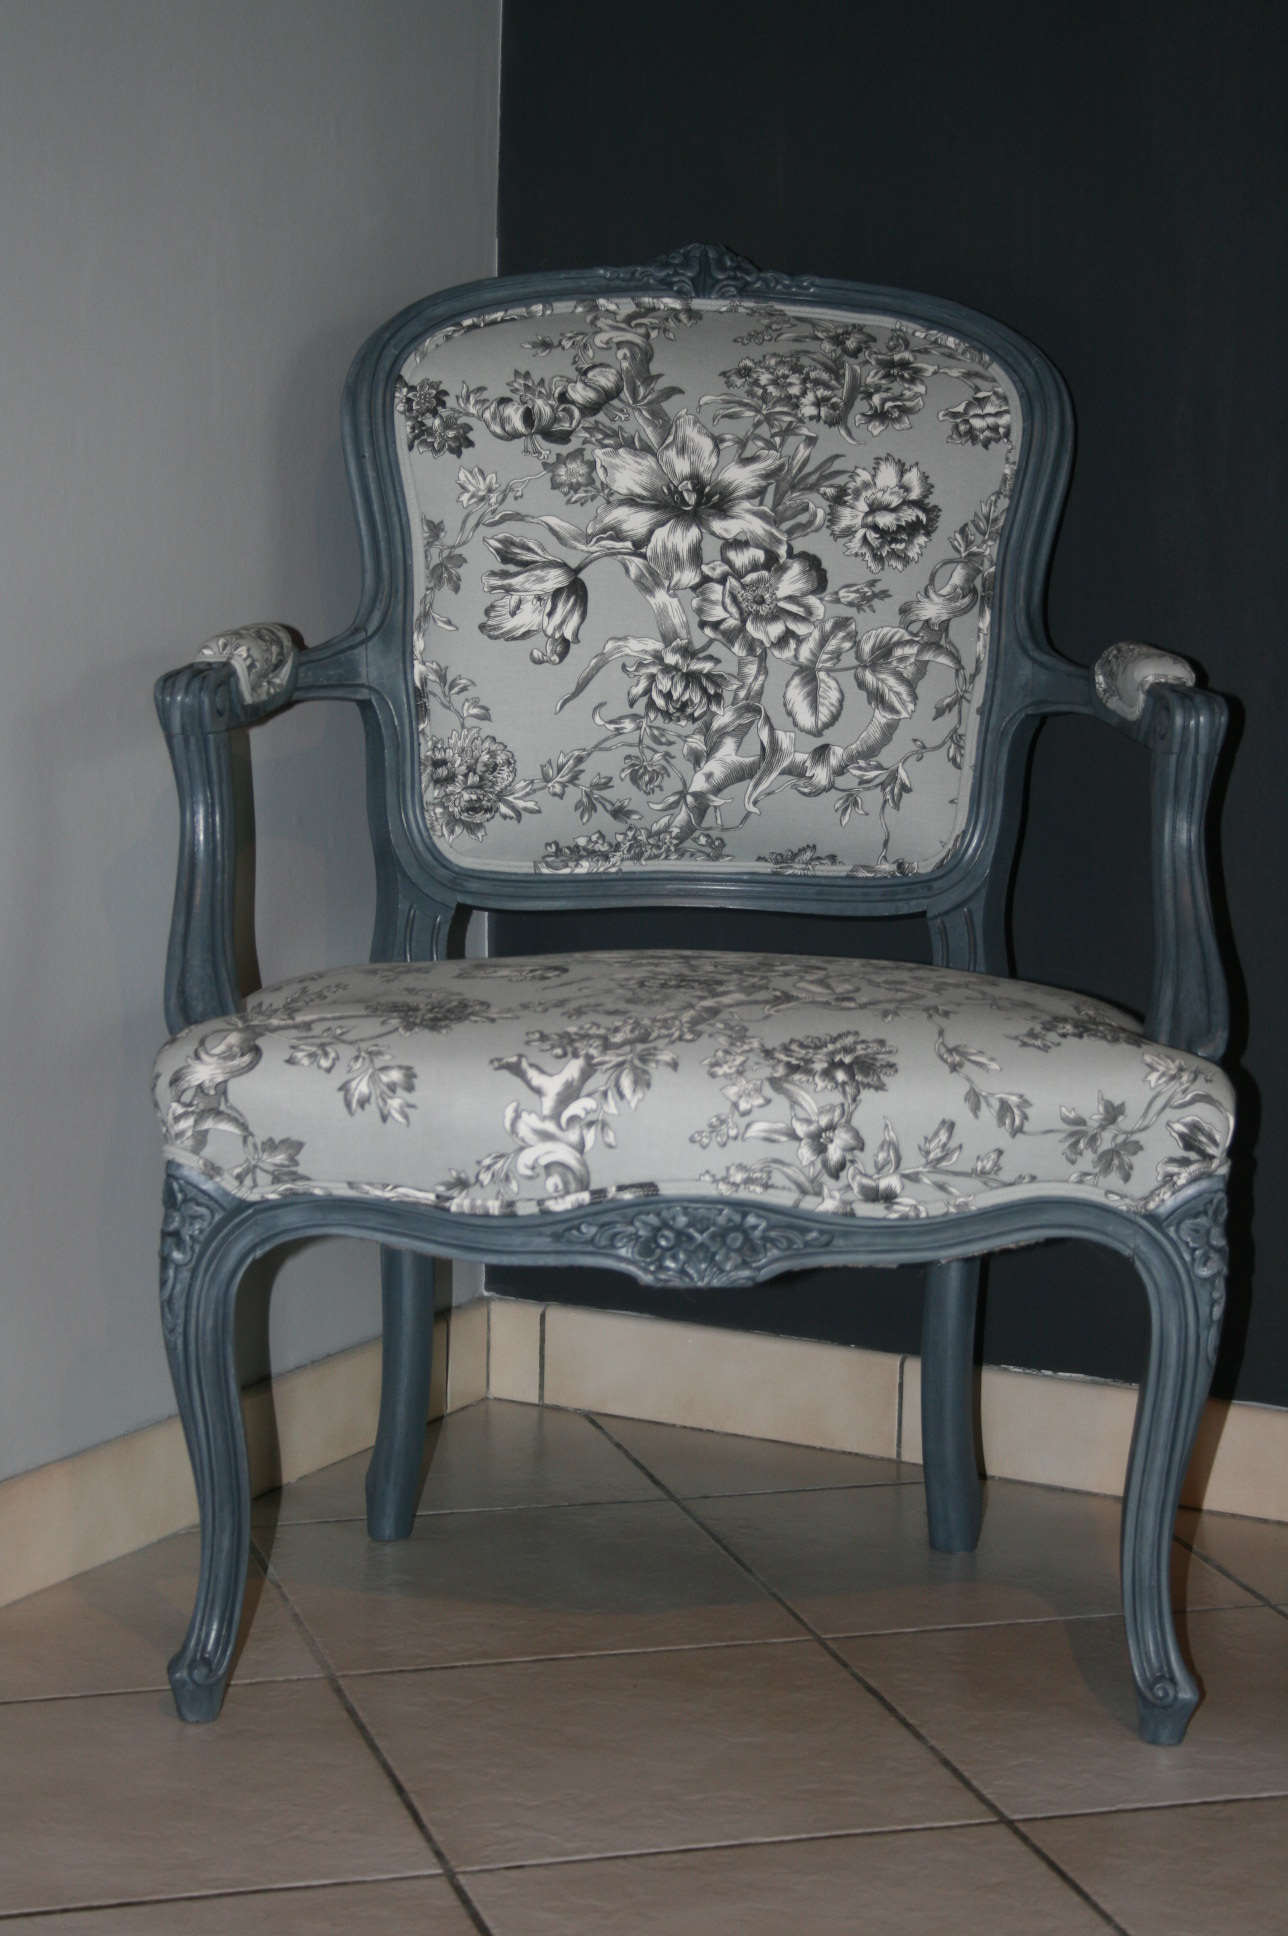 fauteuil-image-1